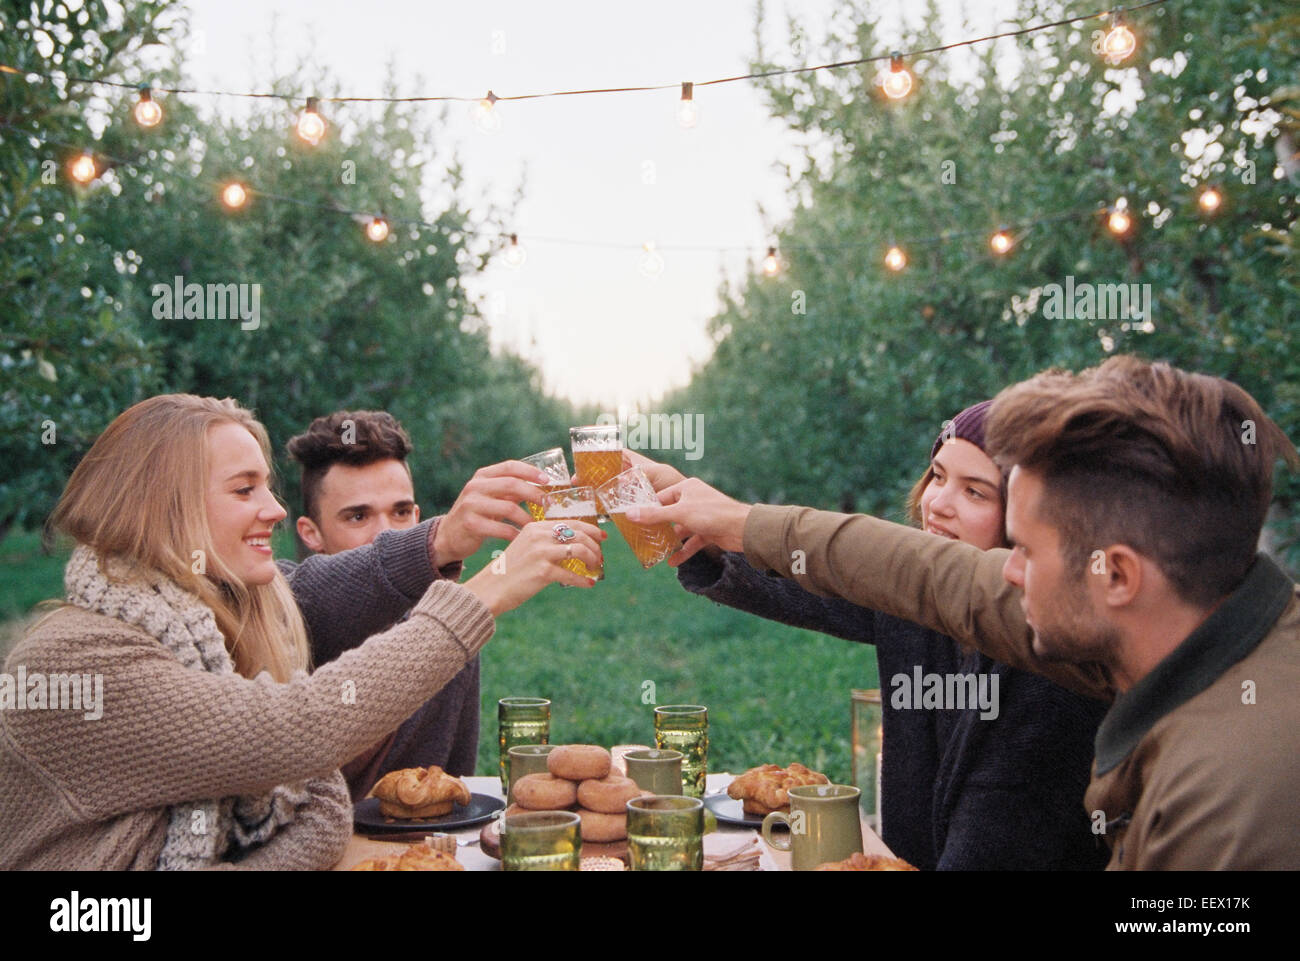 People toasting with a glass of cider - Stock Image